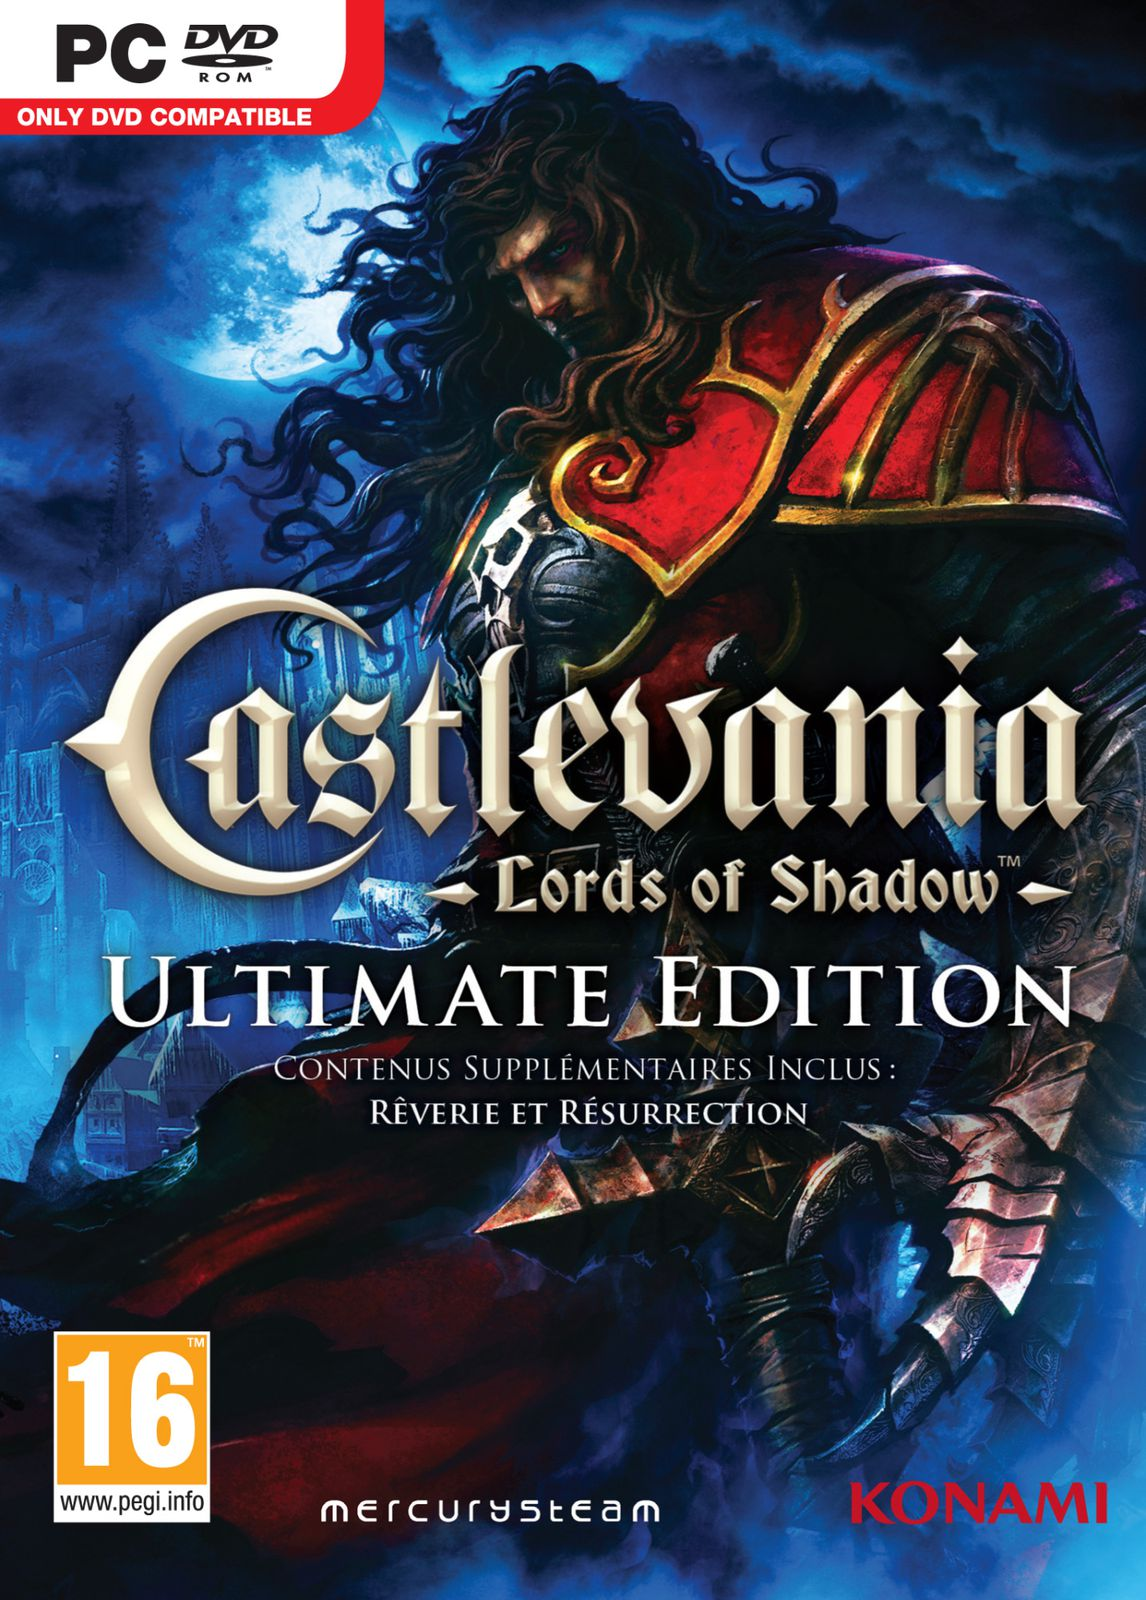 Castlevania: Lords of Shadow: L'Edition Ultime arrive sur PC